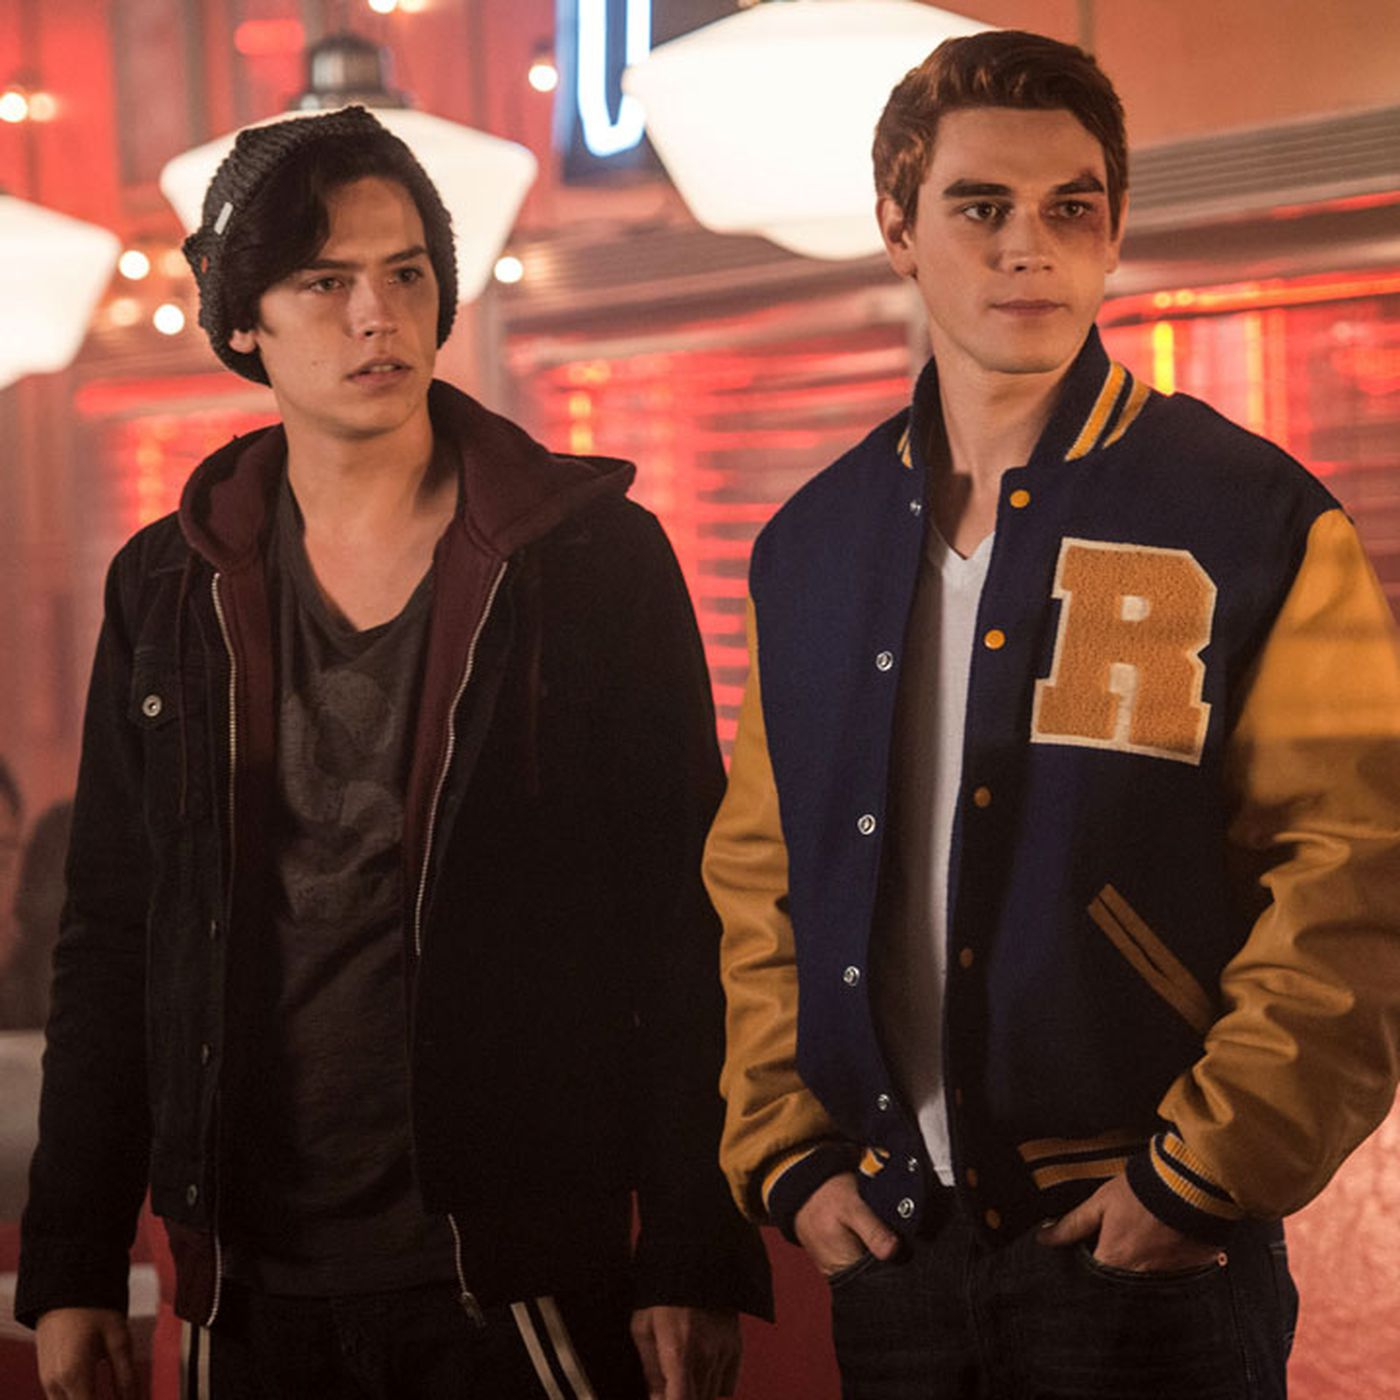 People can't stop mocking Jughead's worst Riverdale scene - Polygon